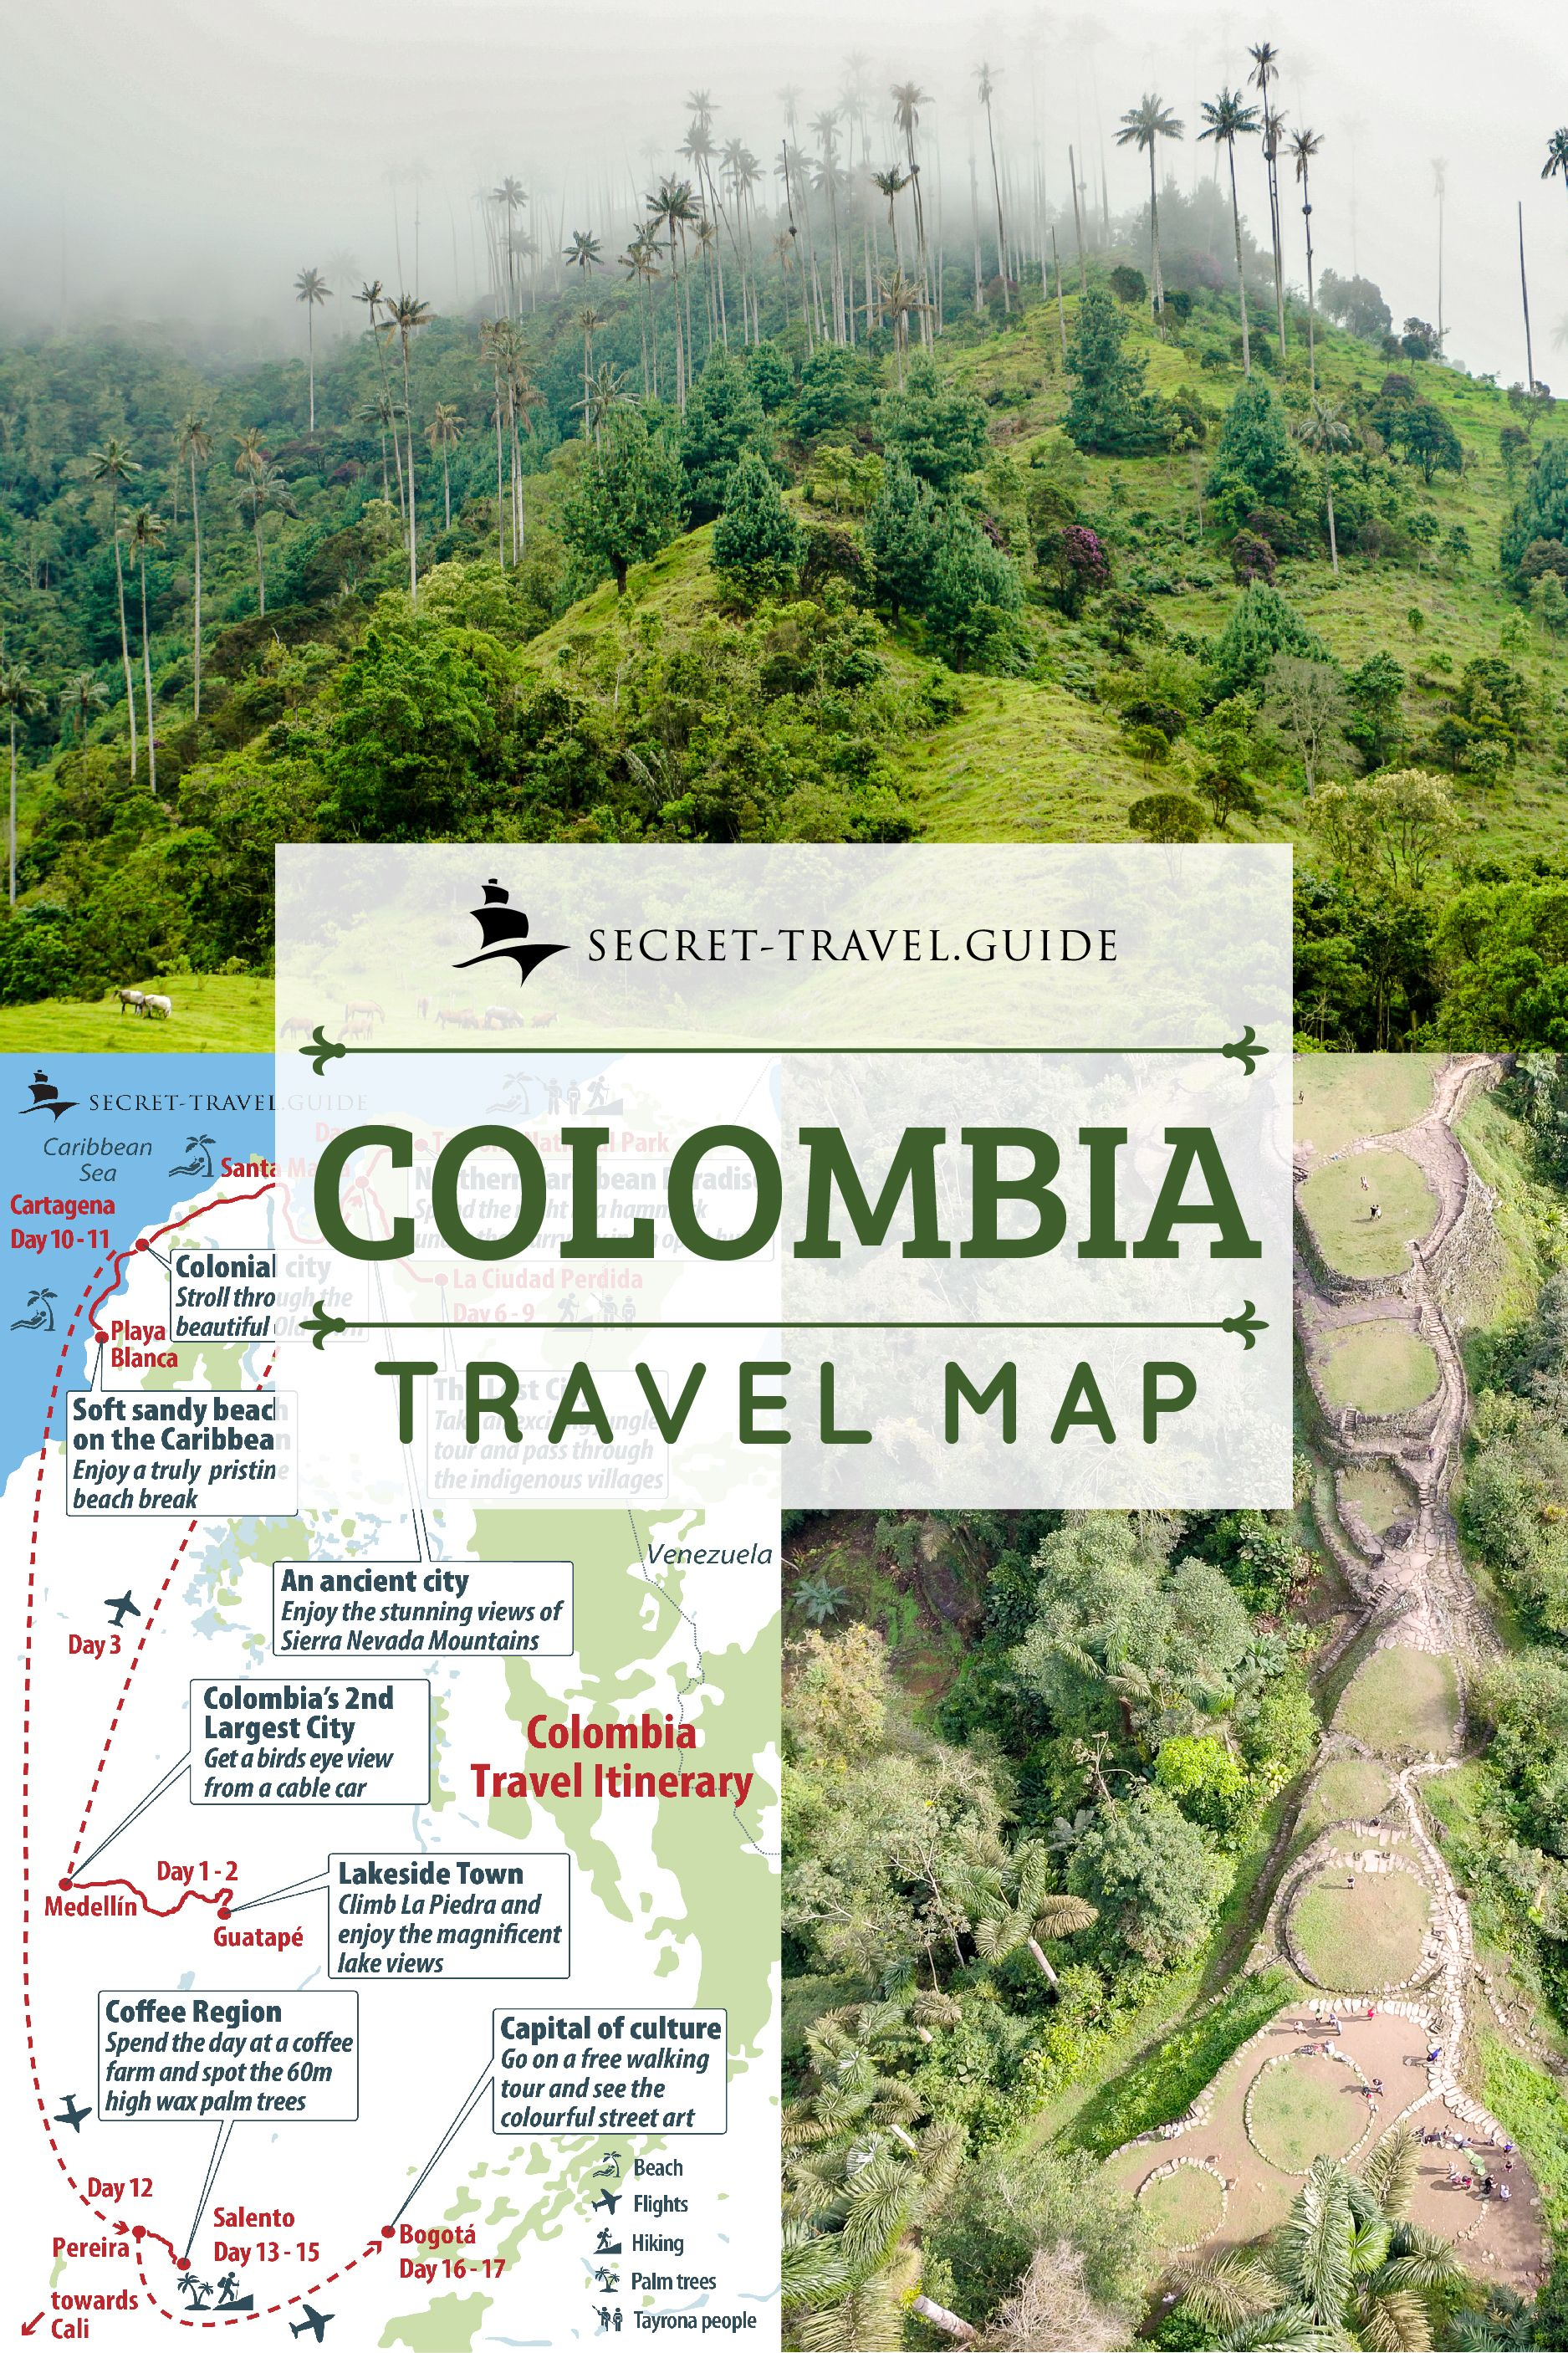 Colombia Travel Guide Secret Travel Guide Colombia Travel Colombia Travel Guide Travel